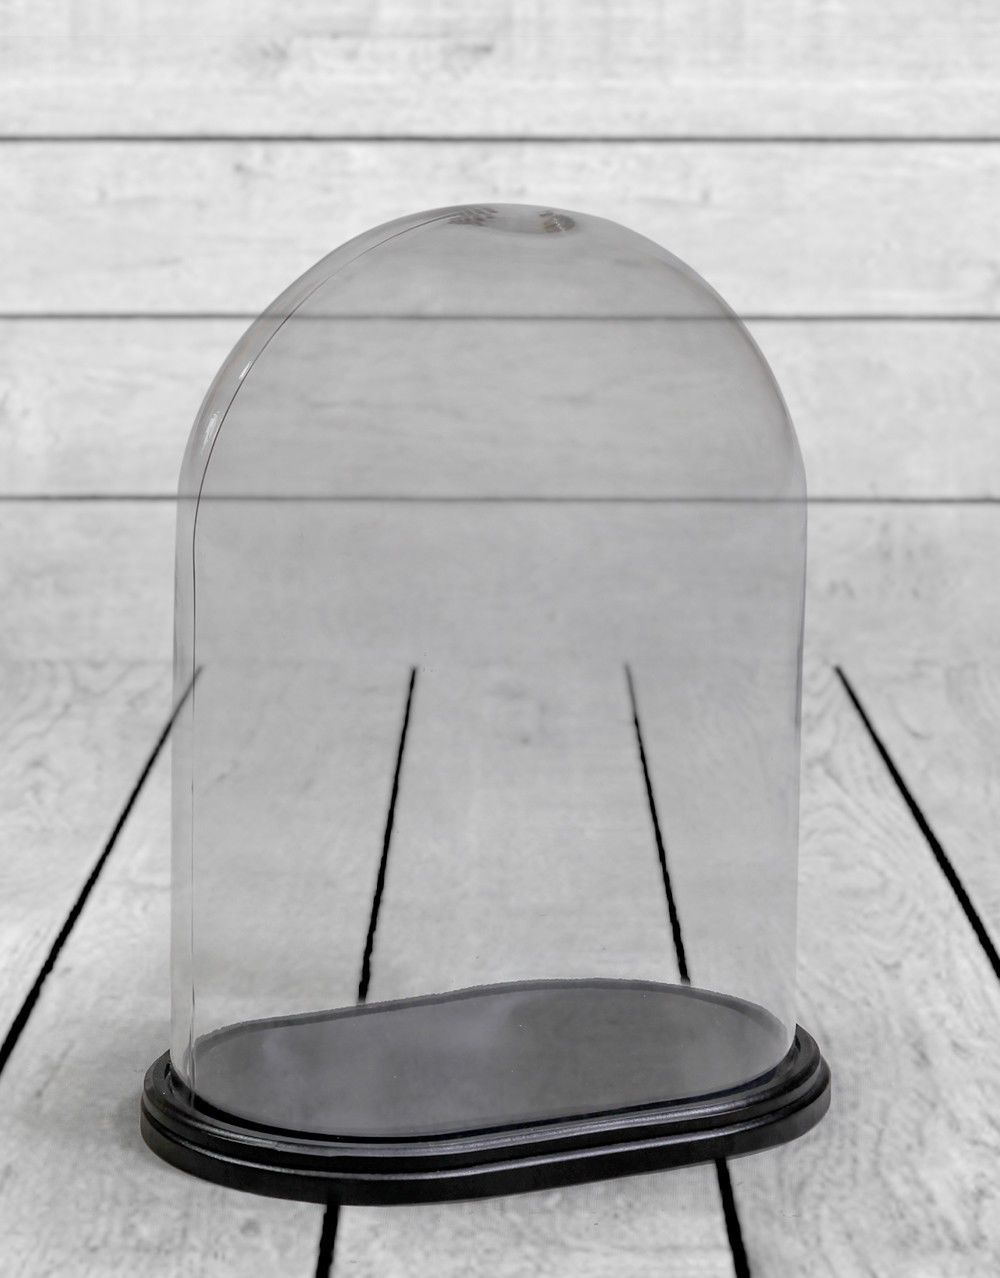 Oval Glass Display Bell Jar Dome Cloche On Black Wooden